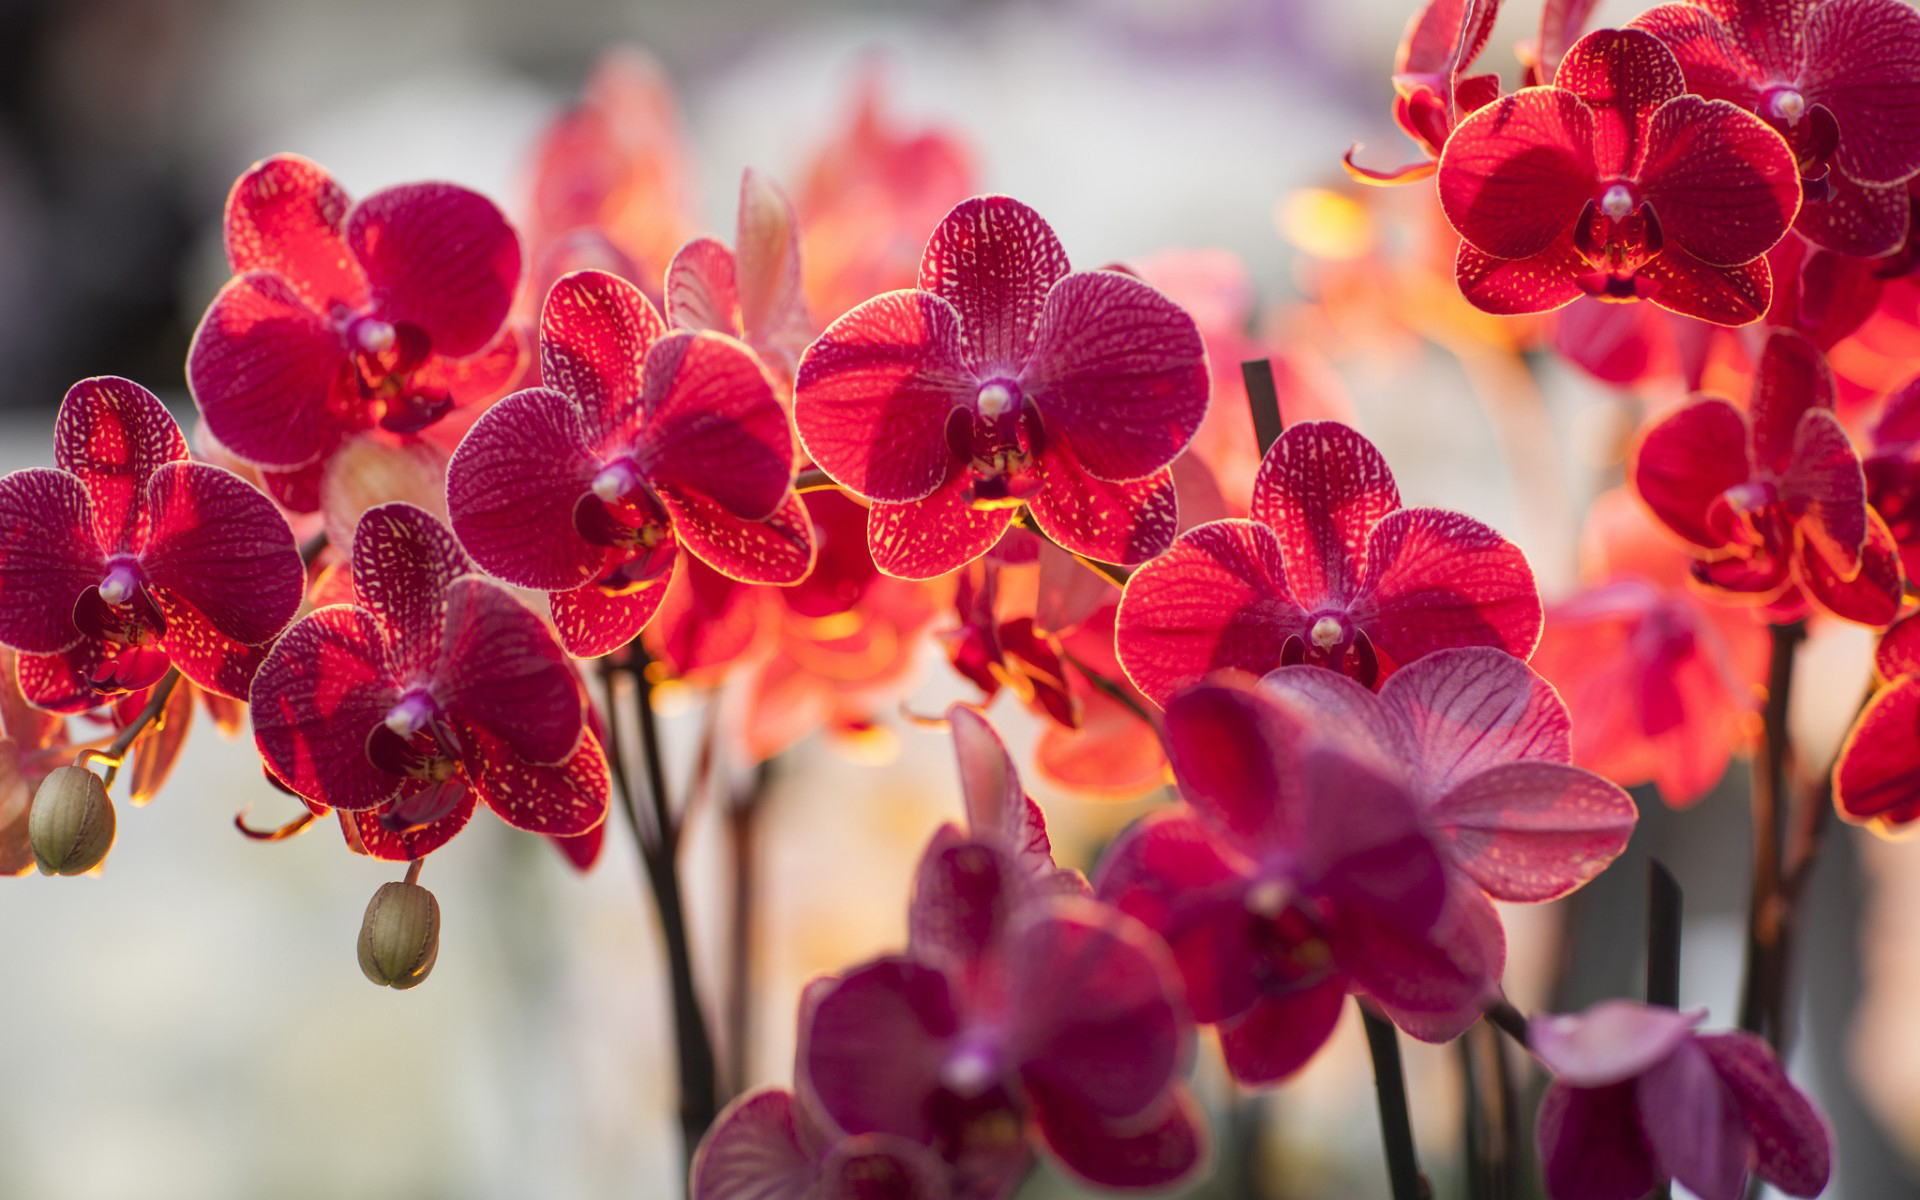 21 Gorgeous HD Orchid Flowers Wallpapers